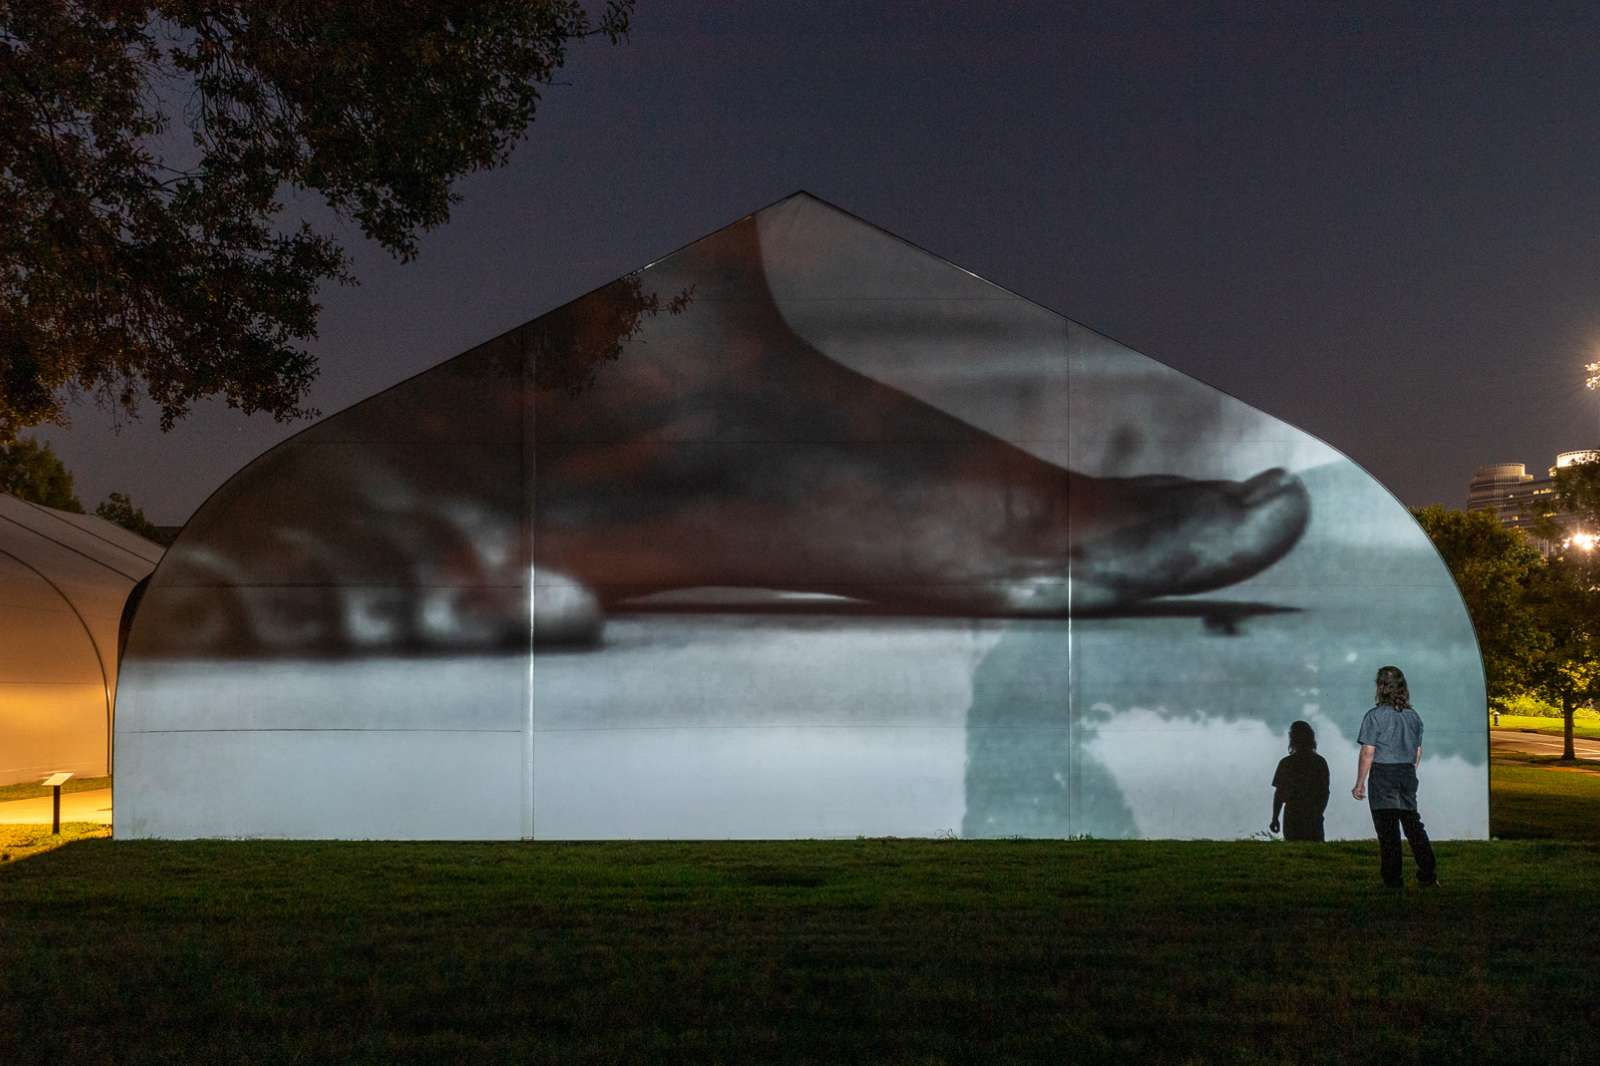 Image of Charisse Pearline Weston's video projection at night on the side of a tent, on Rice's campus